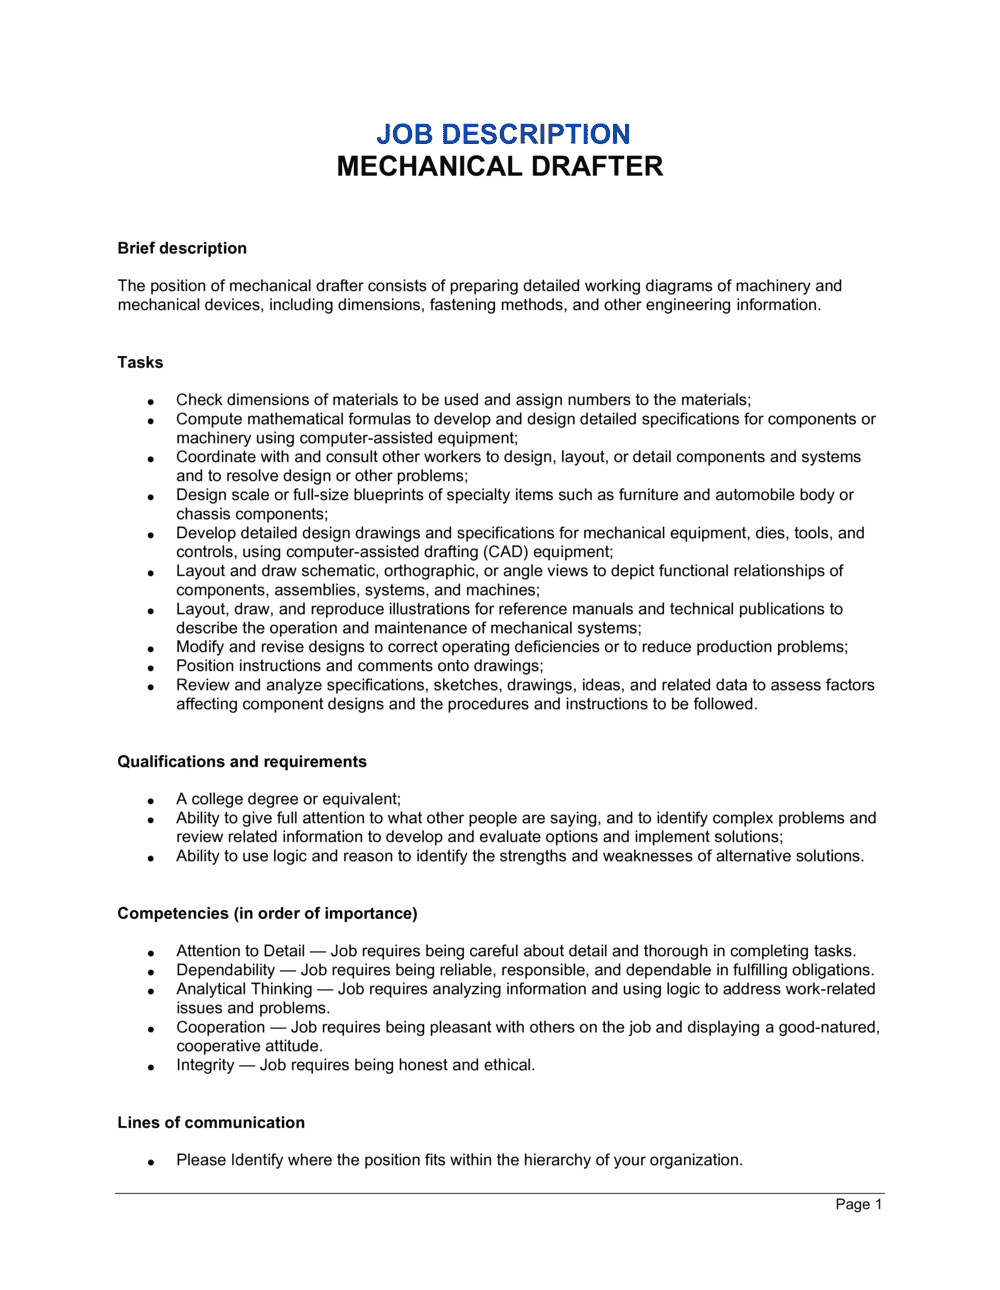 Business-in-a-Box's Mechanical Drafter Job Description Template